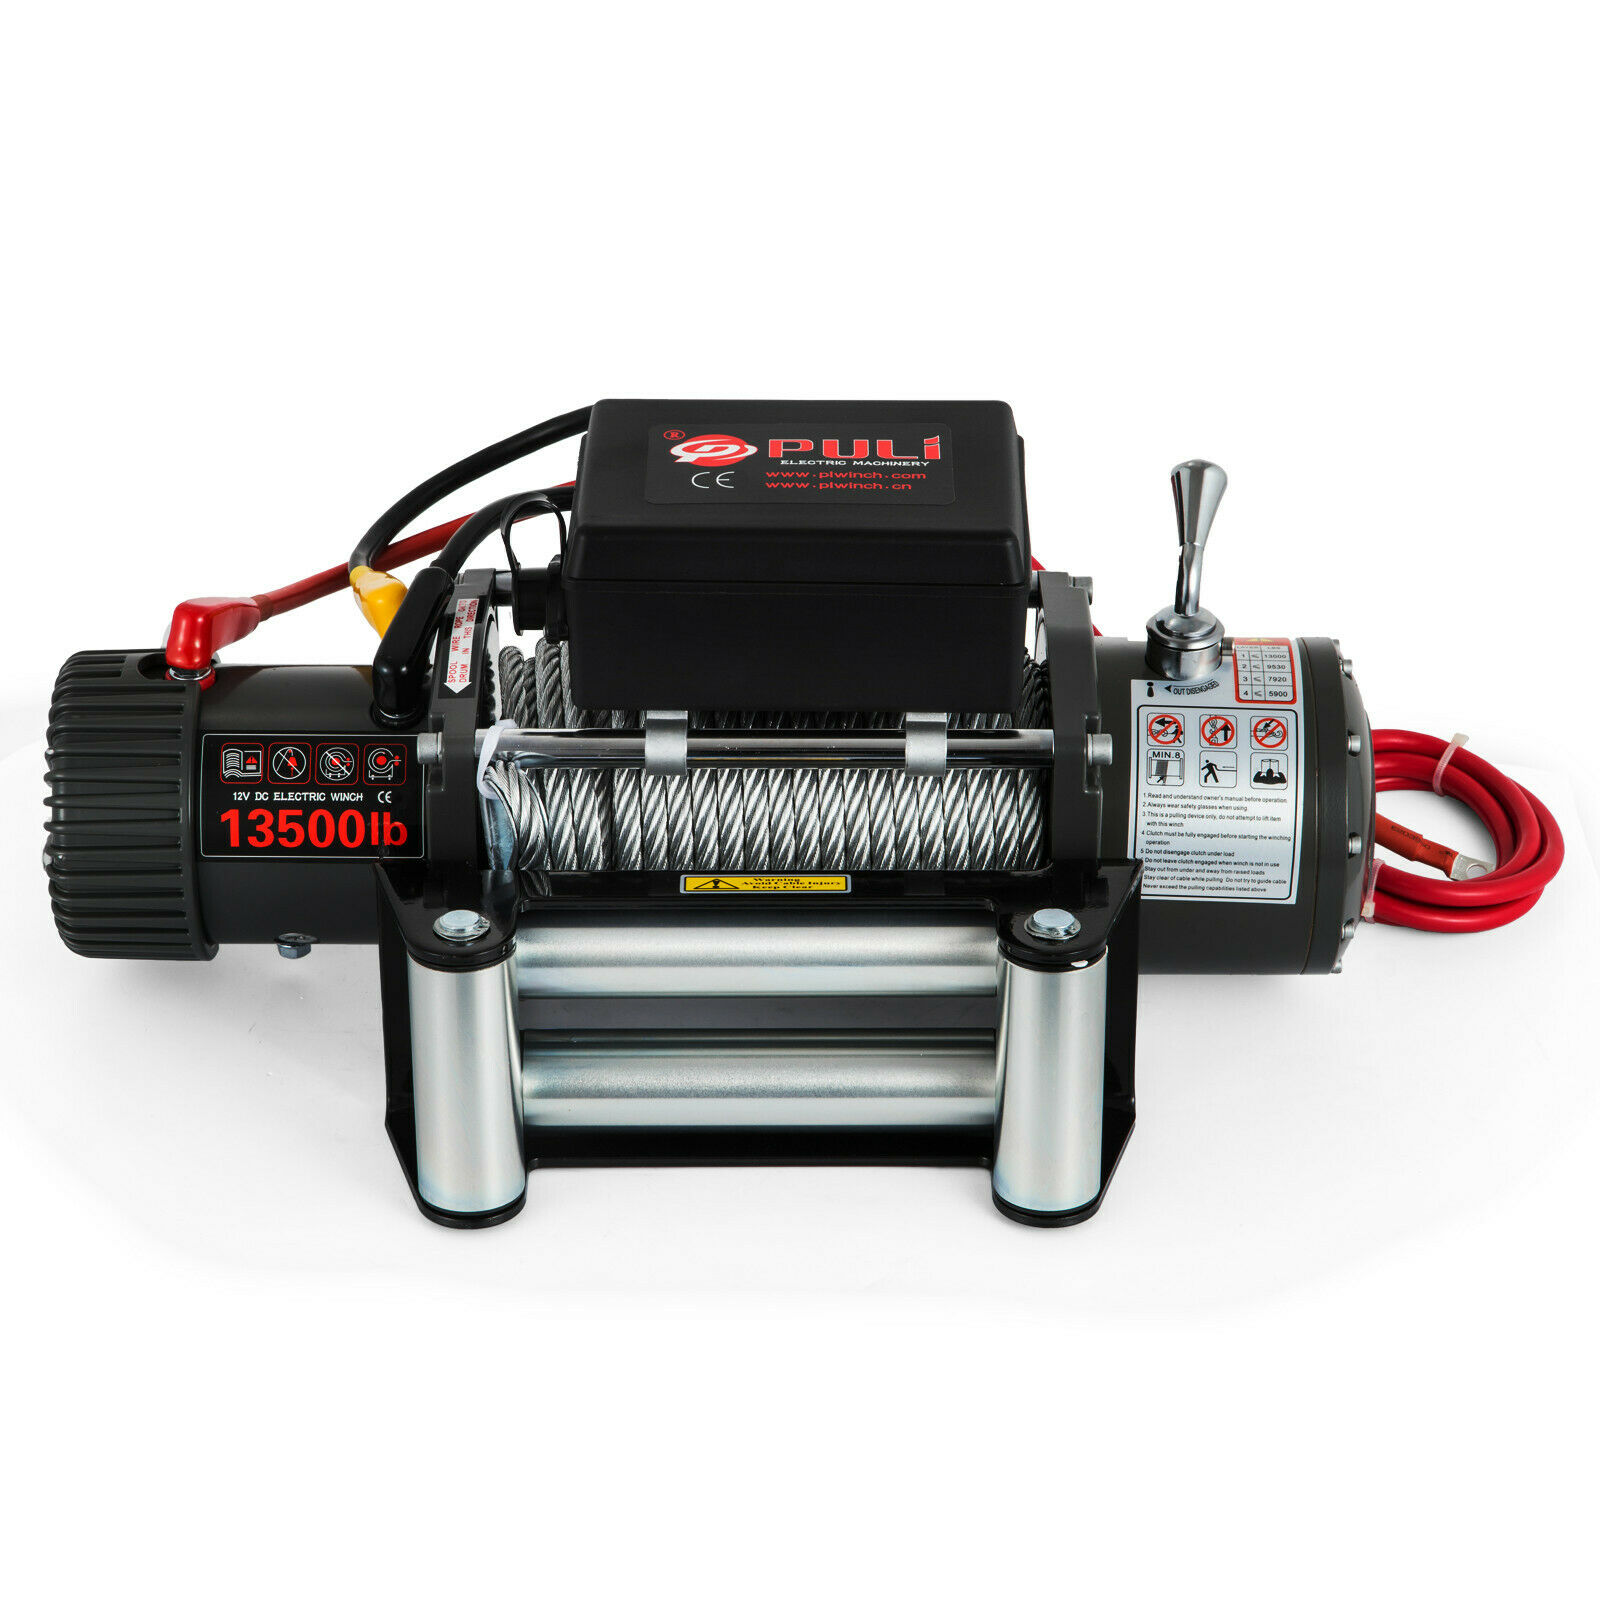 Recovery Electric Winch 12v 13500lbs Truck Trailer Rope Remote Control Heavy Duty Steel Cable With 4x4 Car